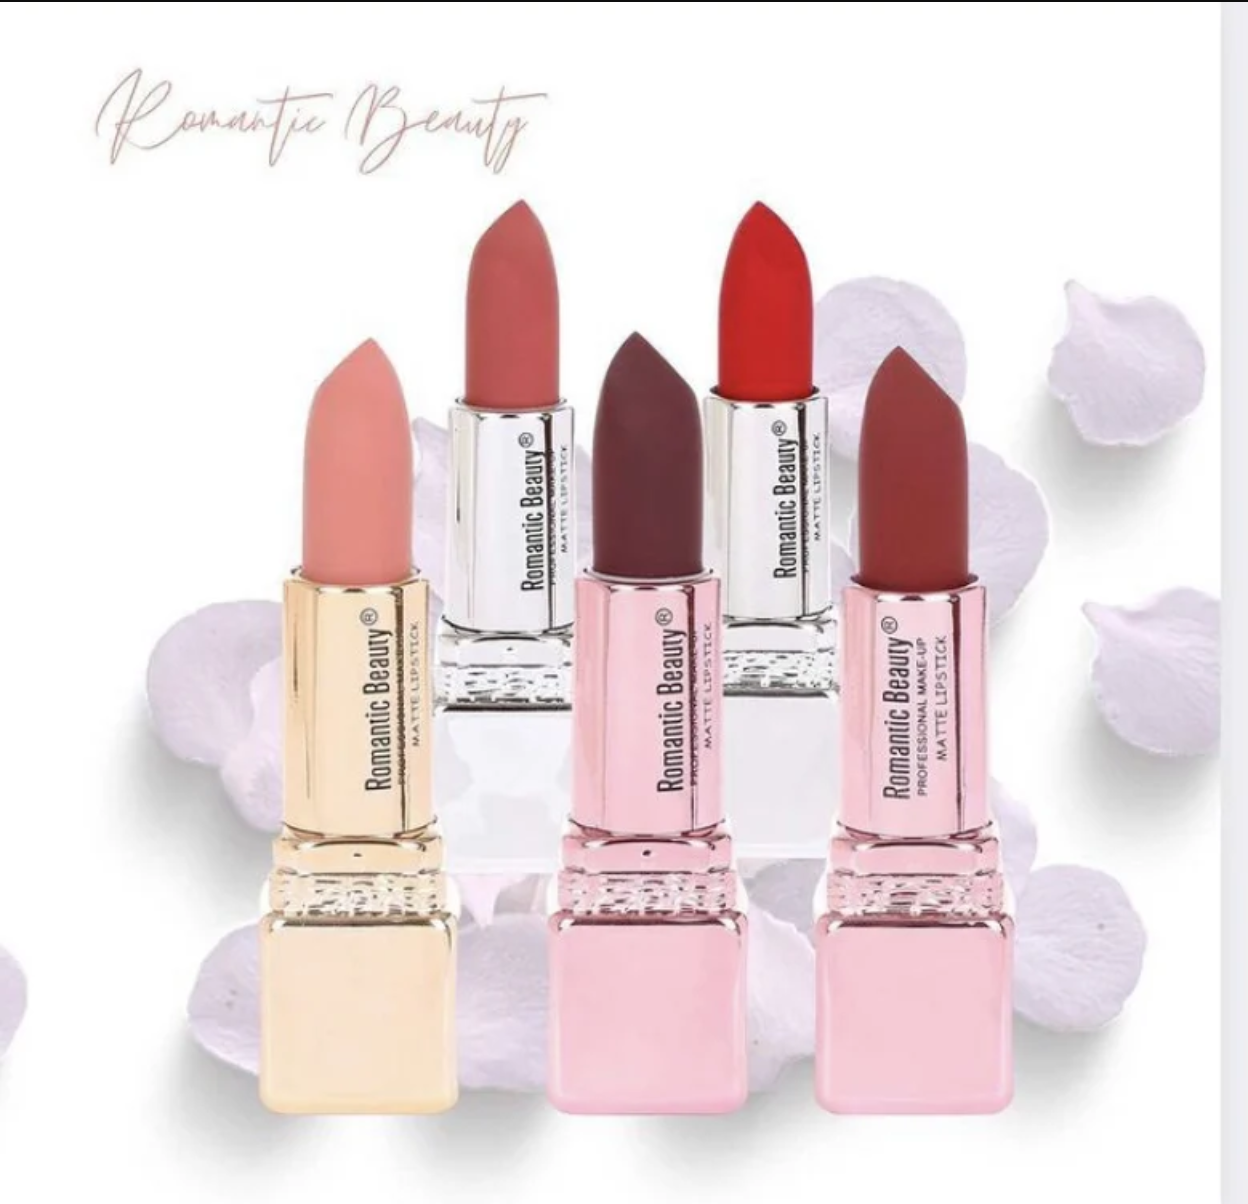 Donne Beauty Shop Announces Dropshipping Online Offering Cosmetics and Beauty Products with a Difference